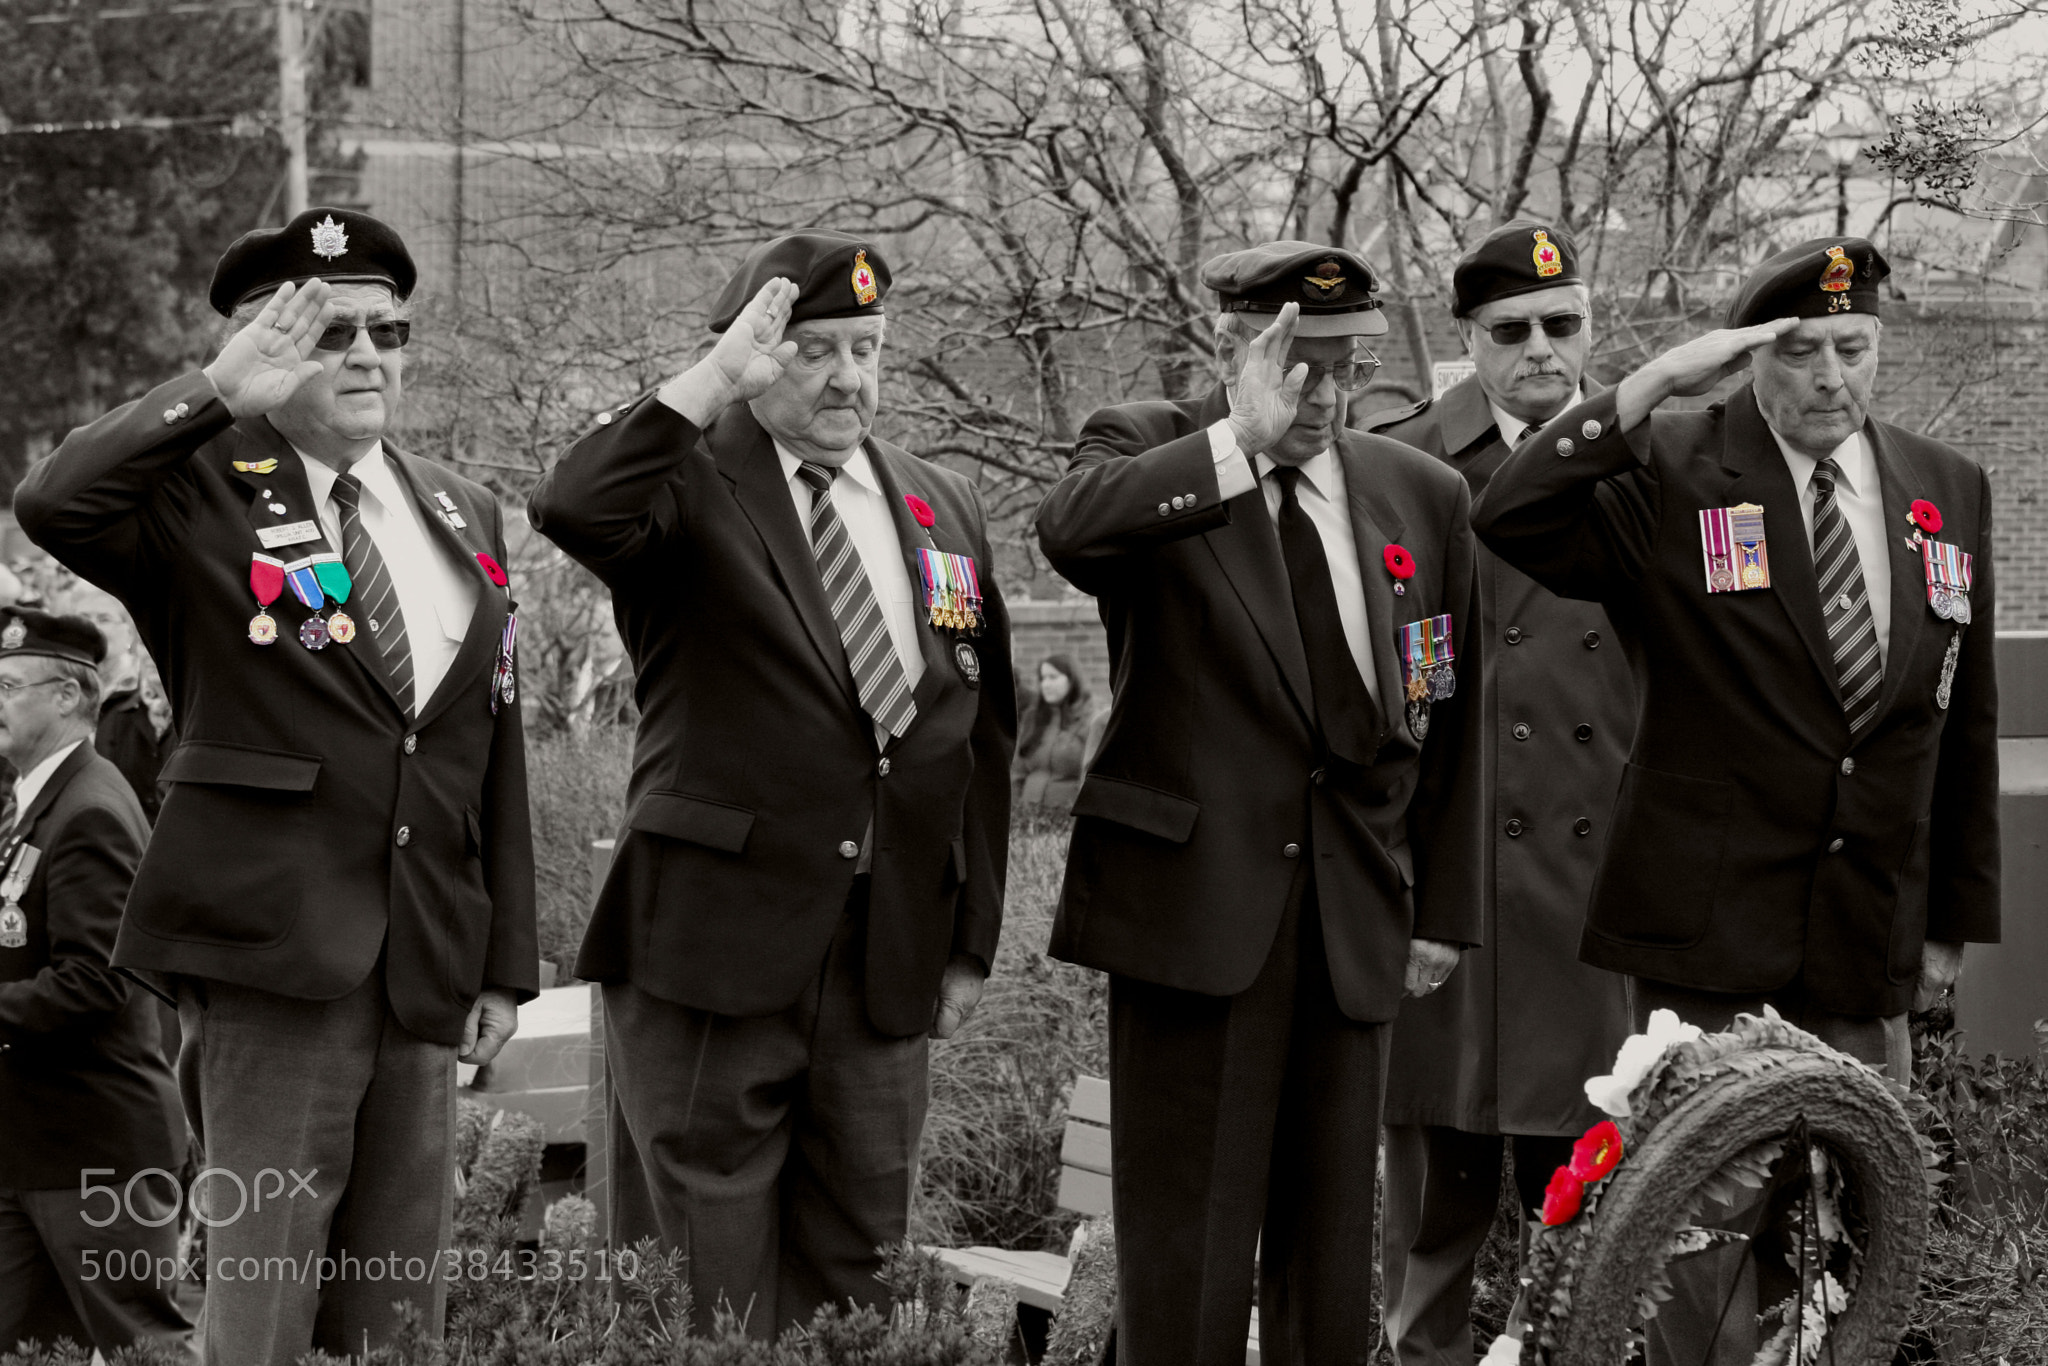 Photograph Saluting Old Comrades by Optical Artworx on 500px